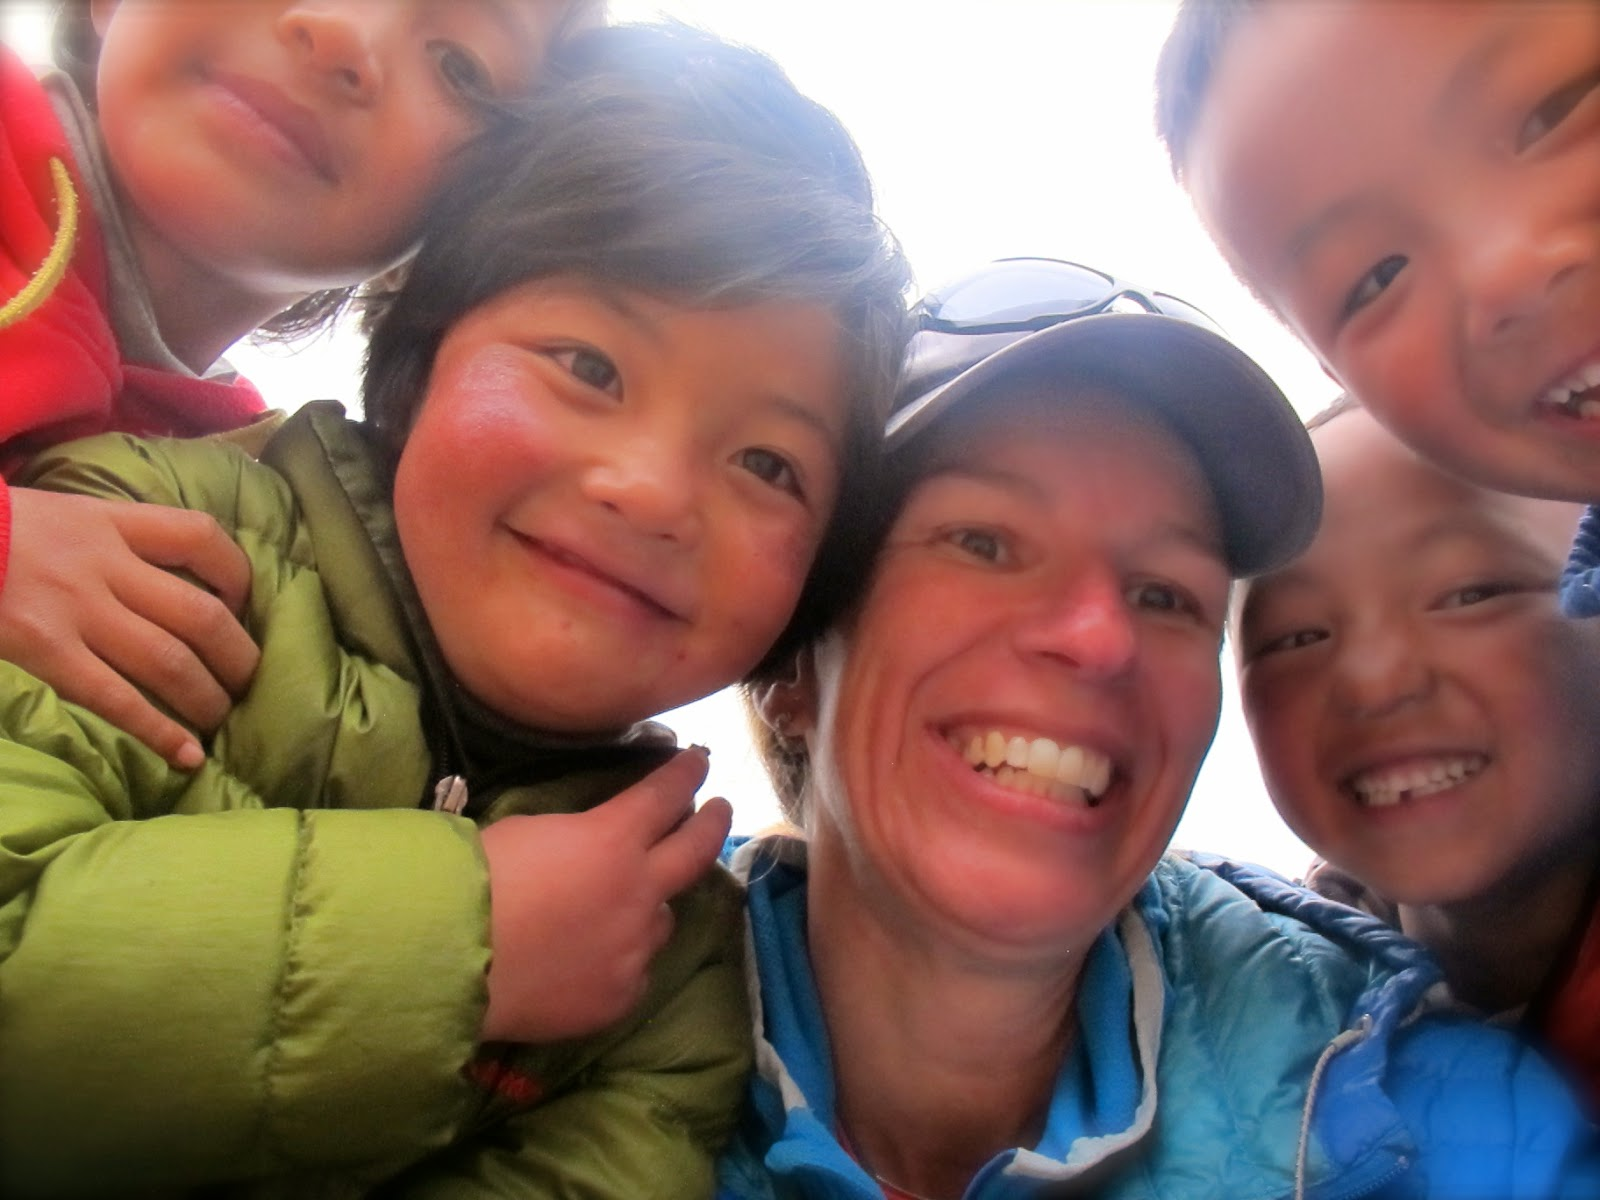 Heather Geluk surrounded by children in Nepal. May 2015. (Photo courtesy of Heather Geluk)